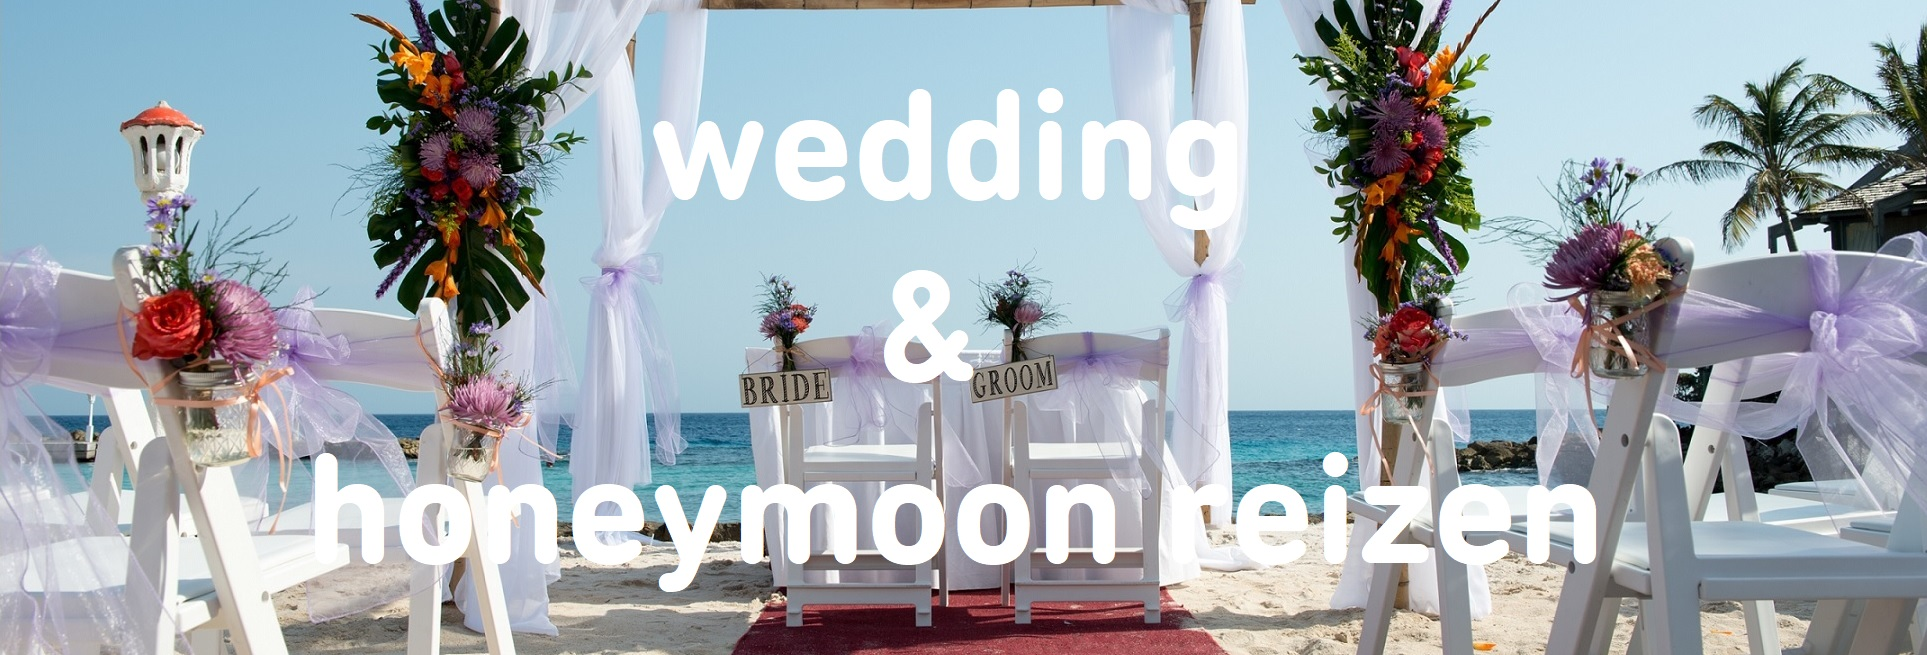 wedding honeymoon reizen